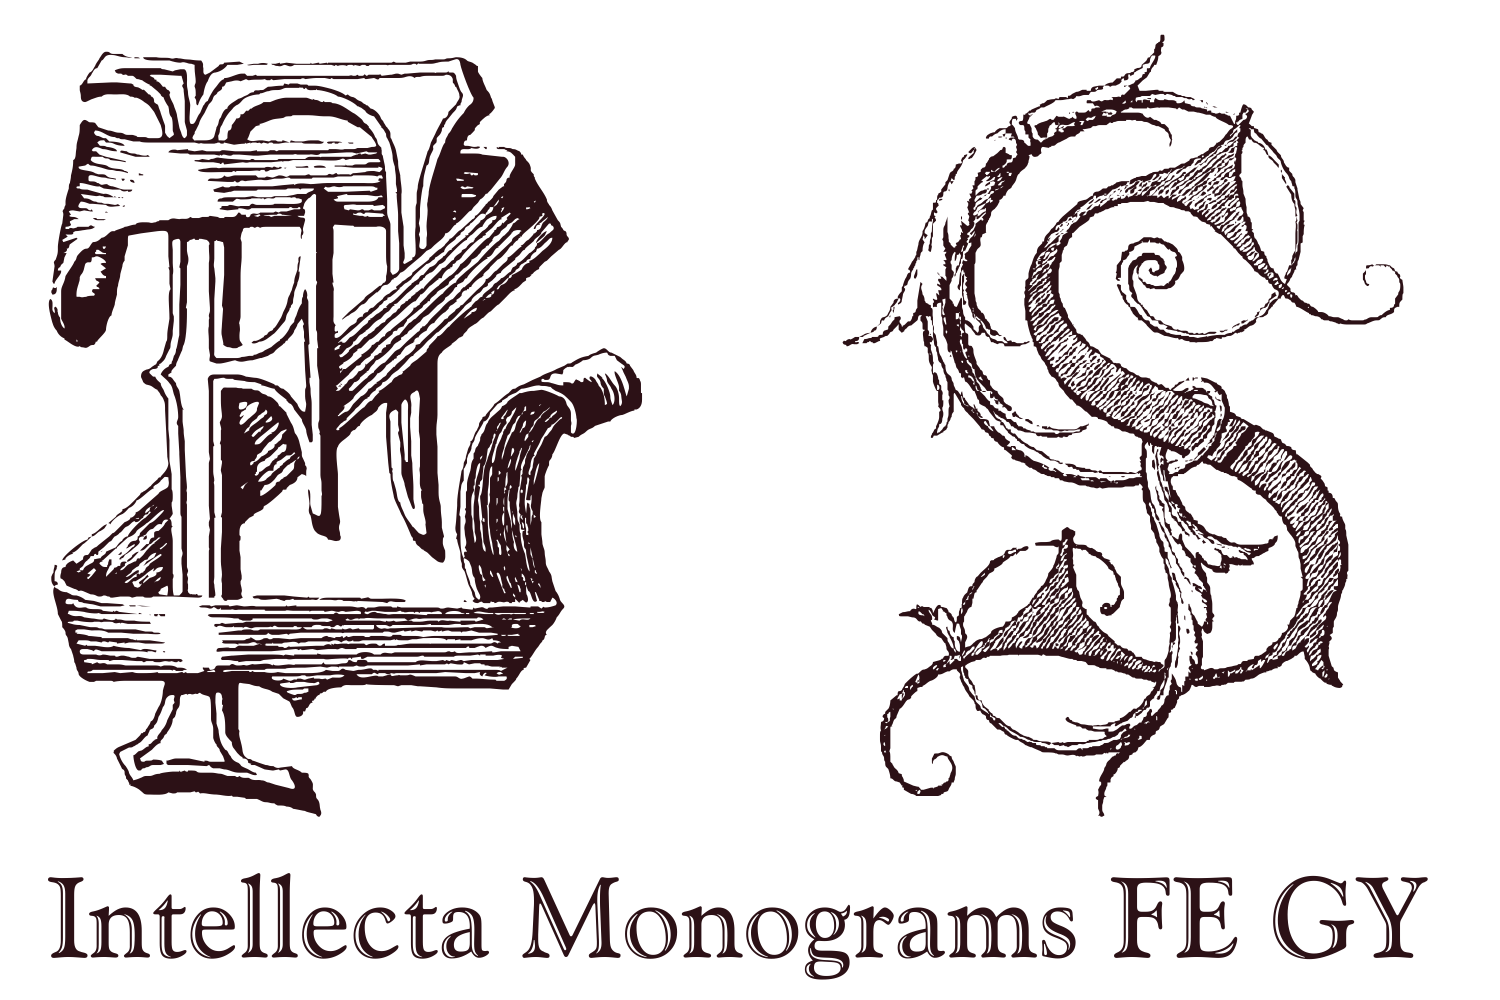 Intellecta Monograms FE GY example image 11